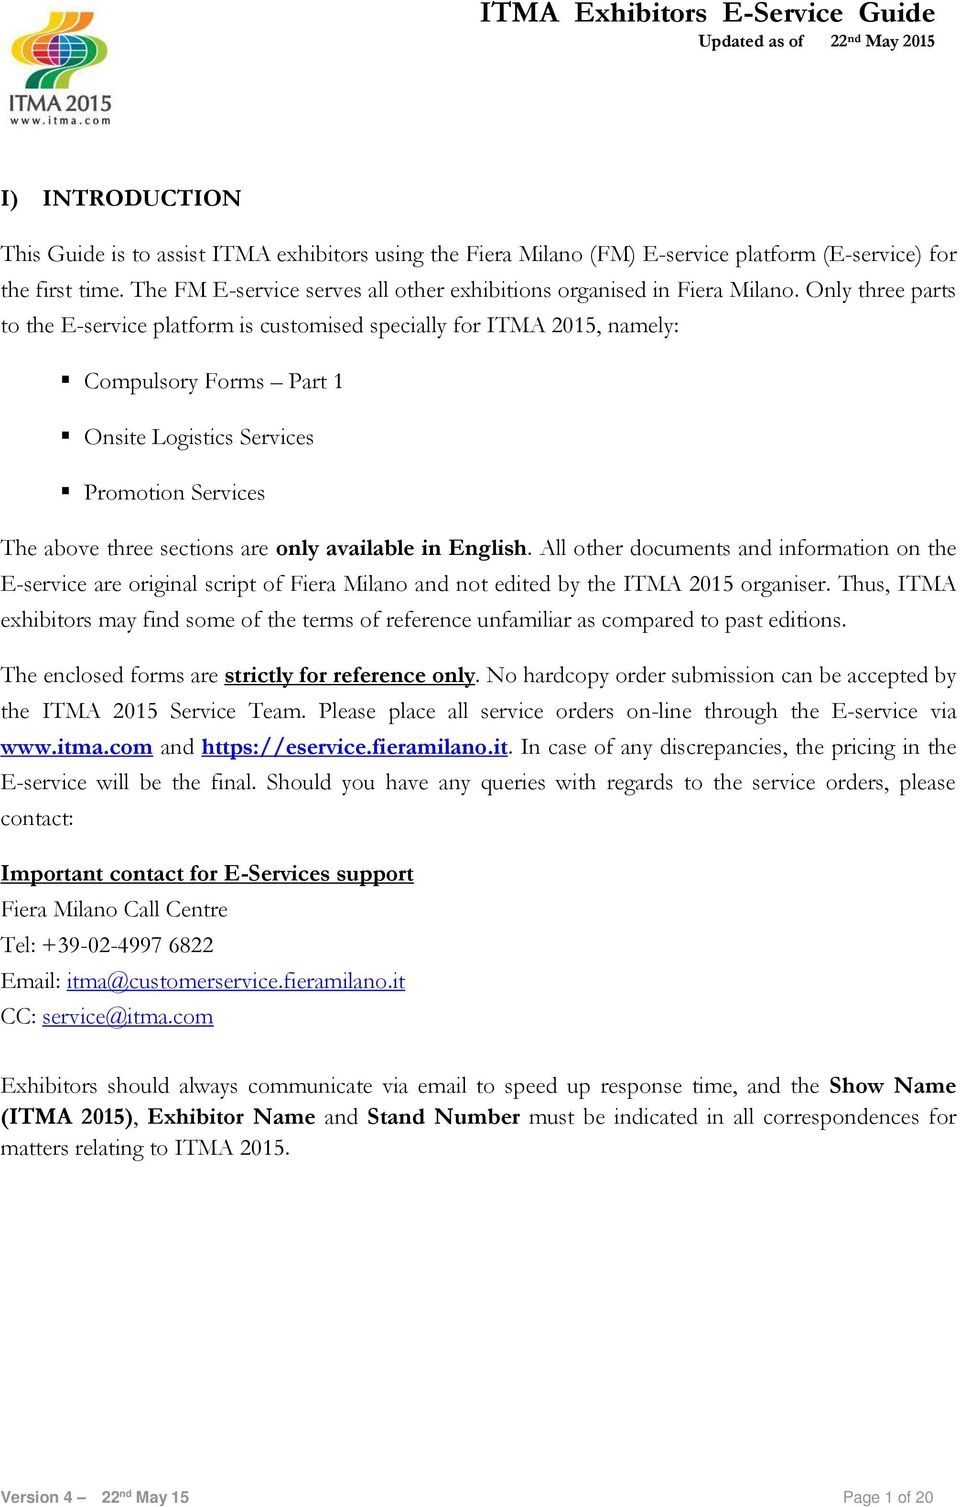 Only three parts to the E-service platform is customised specially for ITMA 2015, namely: Compulsory Forms Part 1 Onsite Logistics Services Promotion Services The above three sections are only